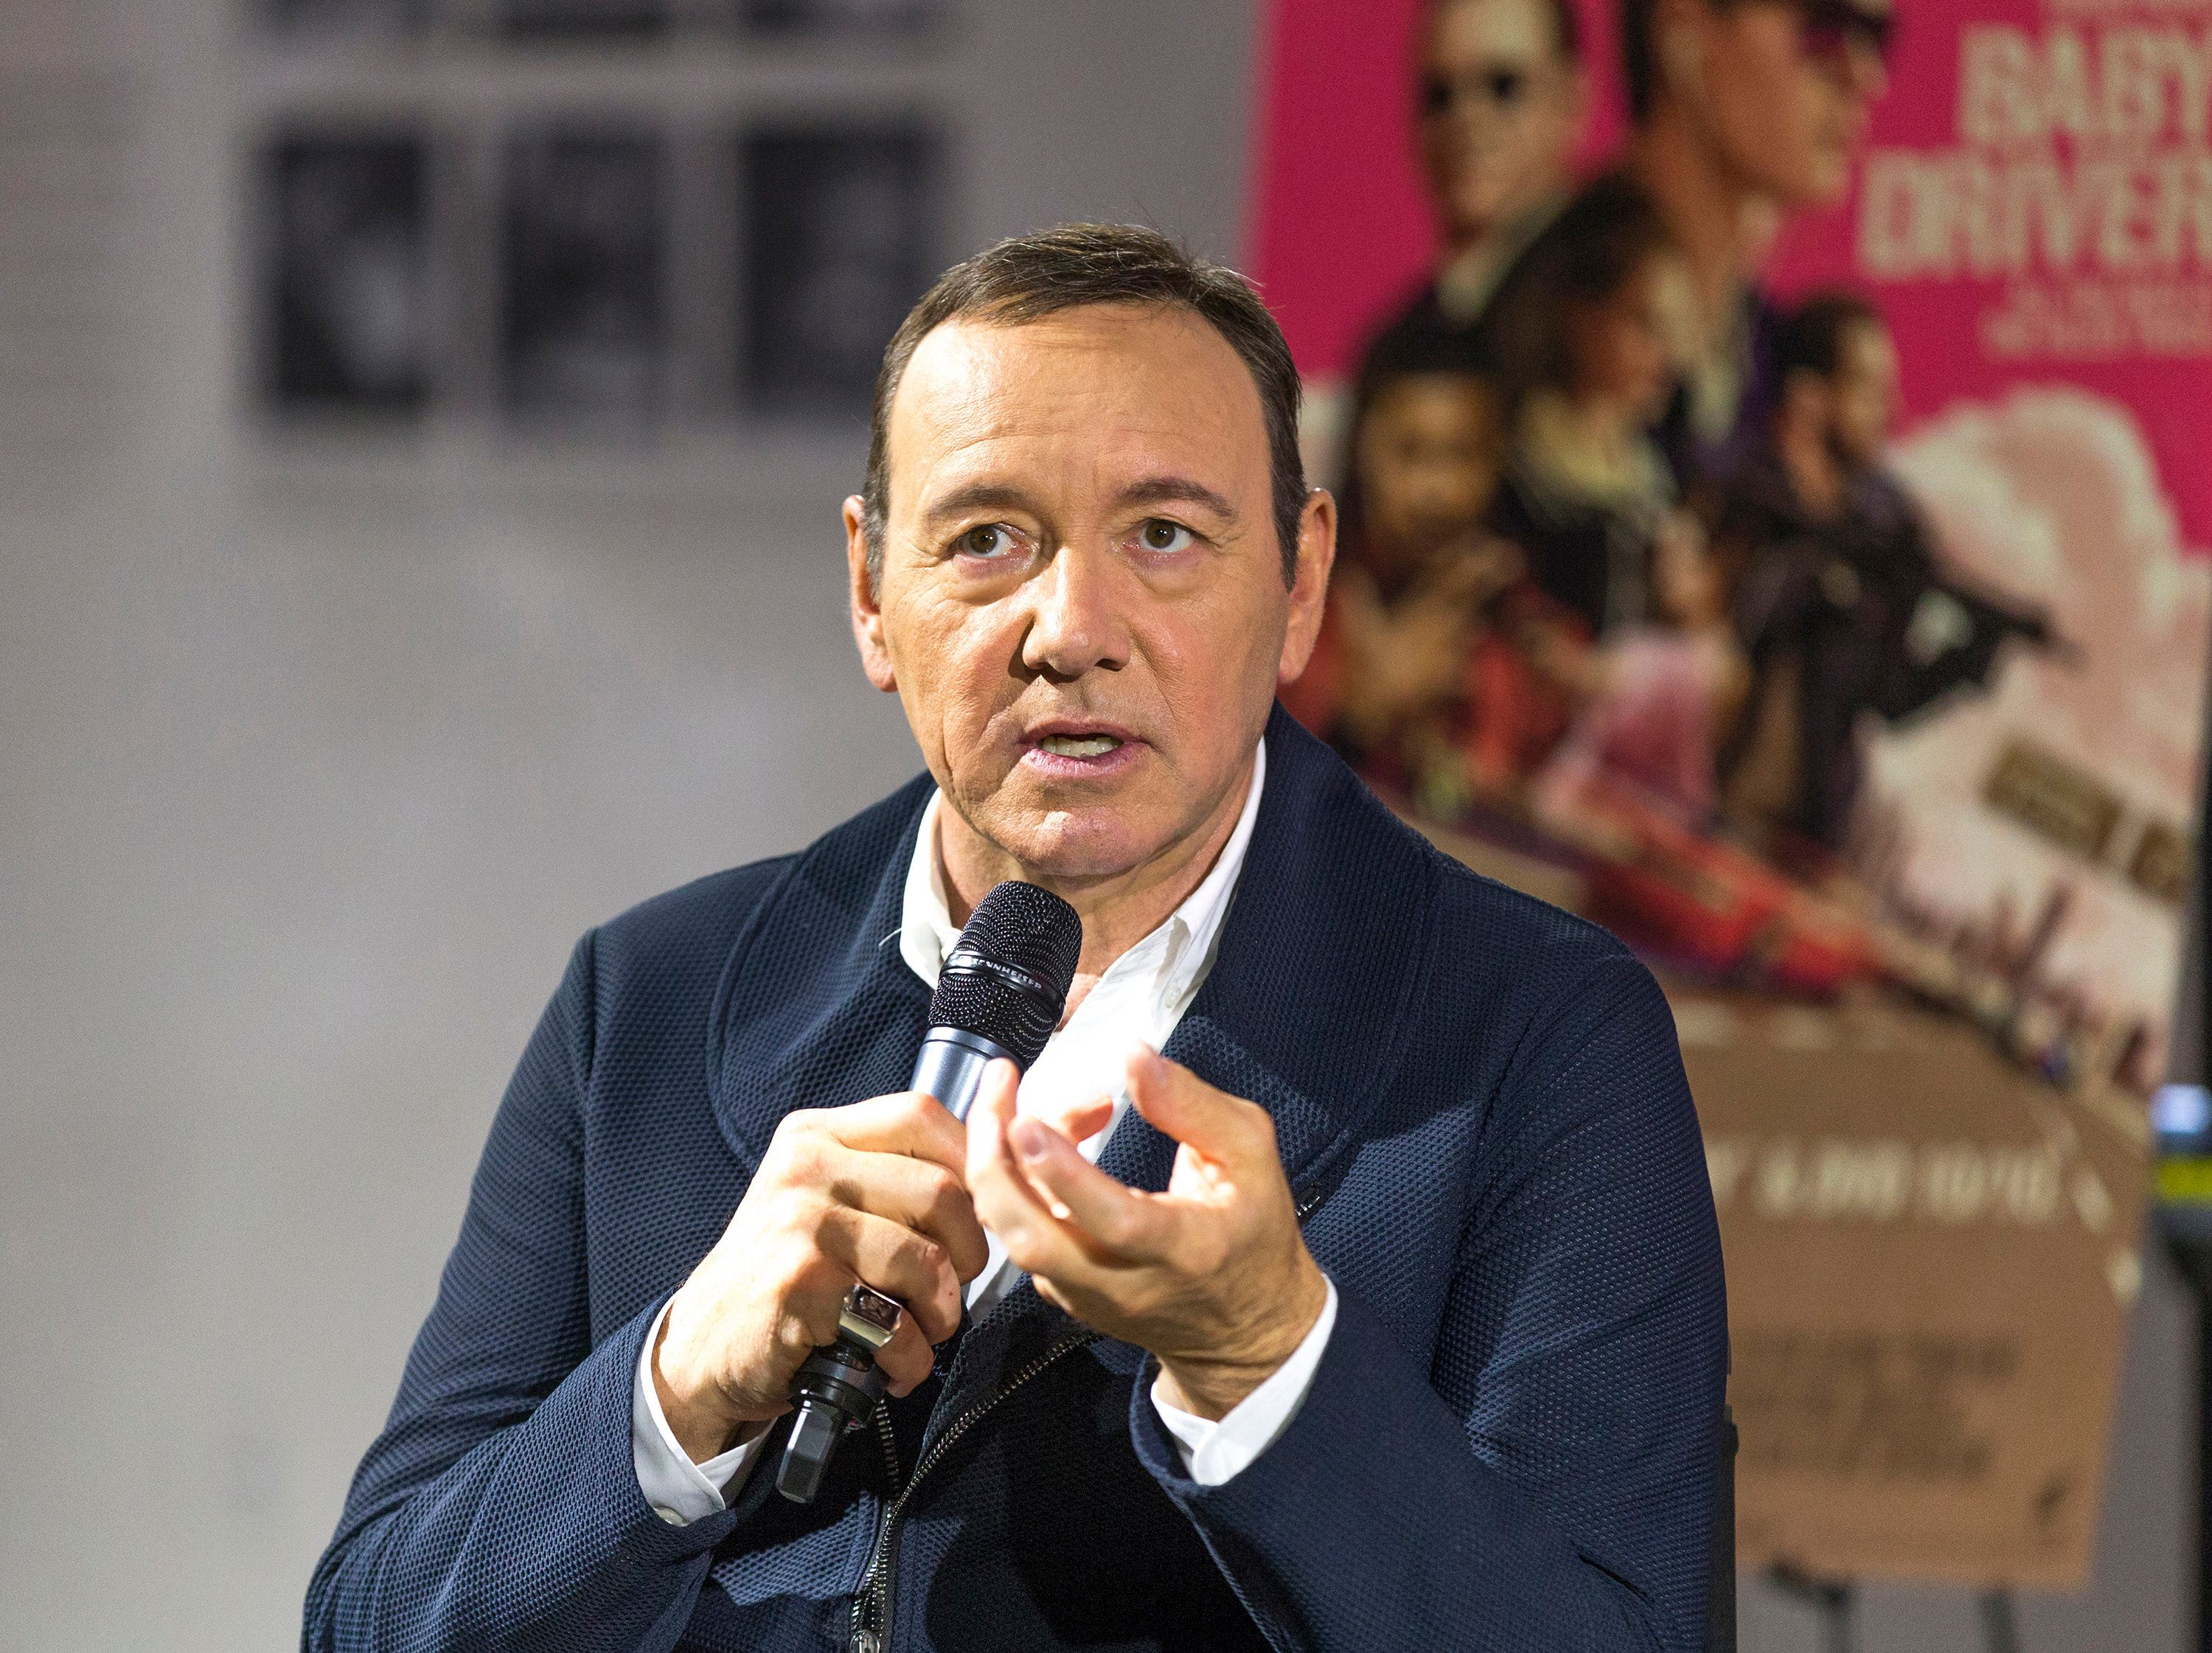 LOS ANGELES, CA - OCTOBER 04:  Actor/producer Kevin Spacey talks on stage at Cars, Arts & Beats: A Night Out With 'Baby Driver' at the Petersen Automotive Museum on October 4, 2017 in Los Angeles, California.  (Photo by Rochelle Brodin/Getty Images for Sony Pictures Home Entertainment)